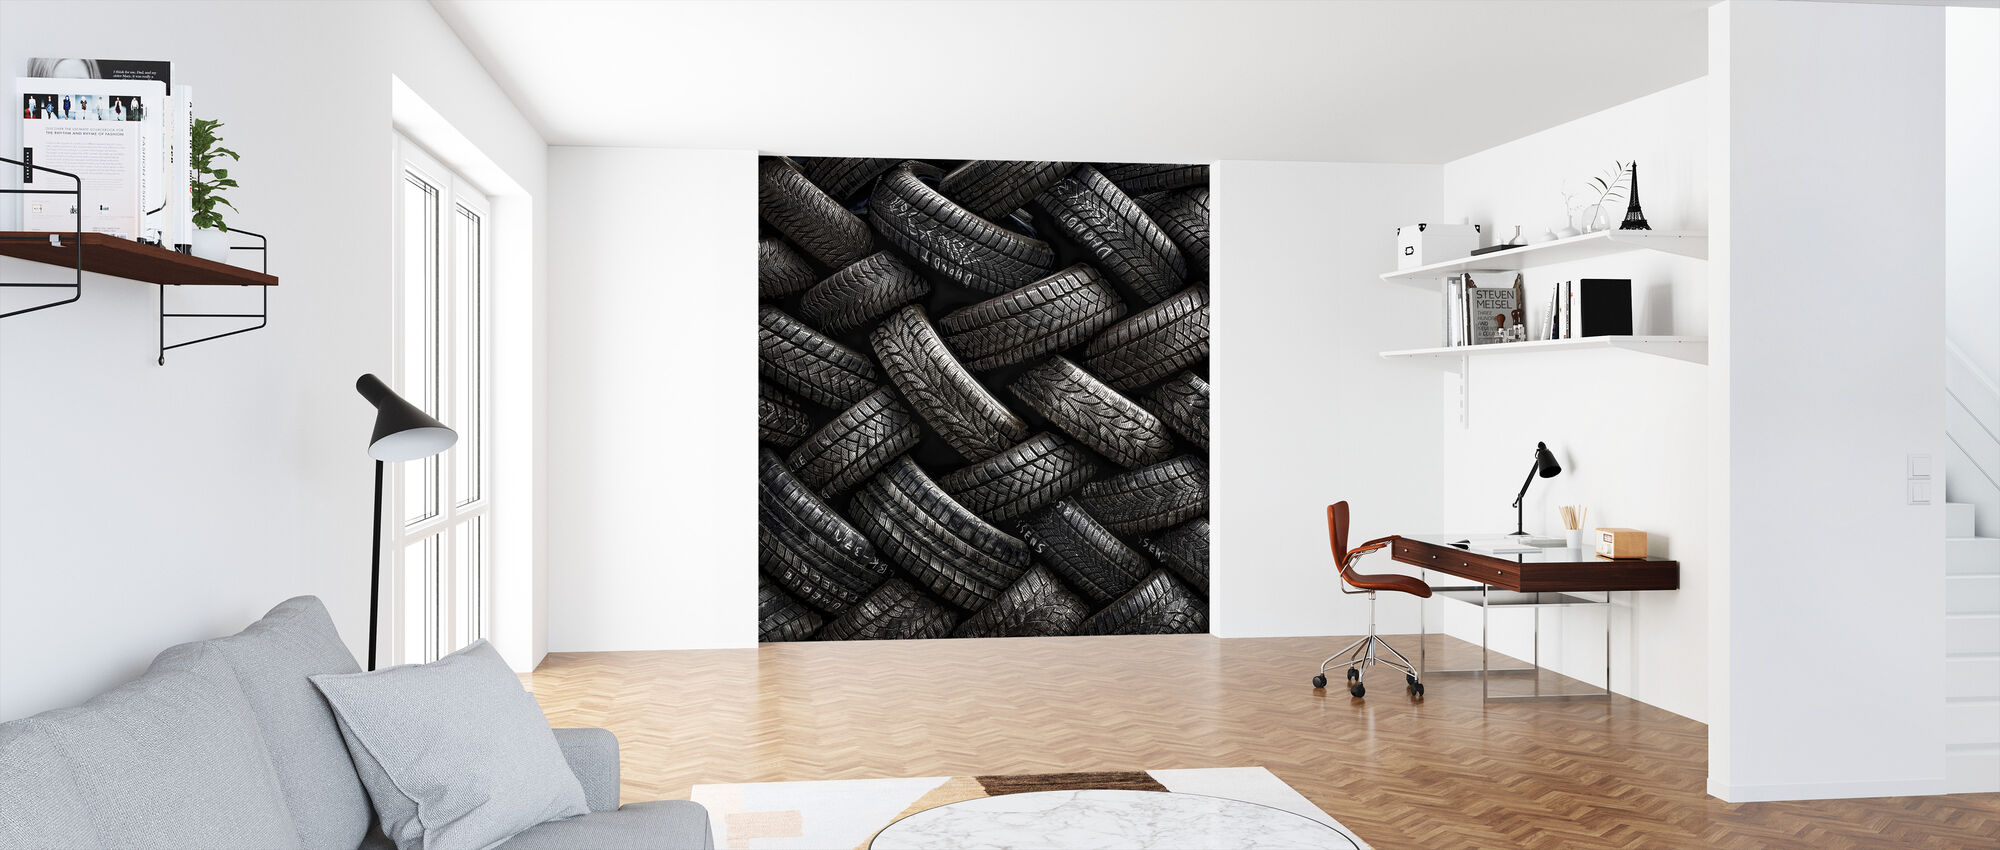 Tire Tread - Wallpaper - Office